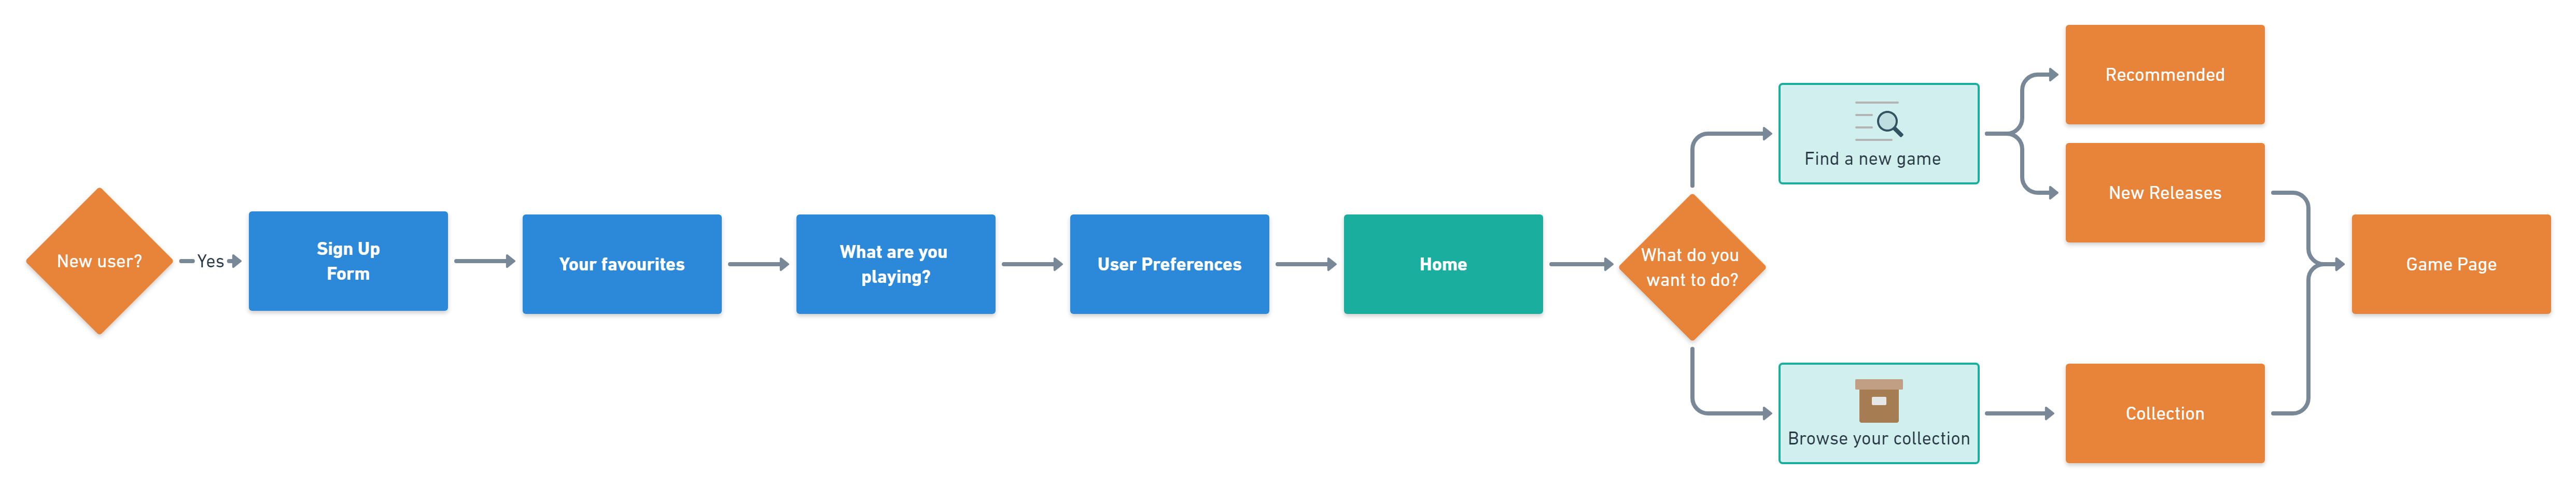 Basic map of how the first-time user experience might be mapped.